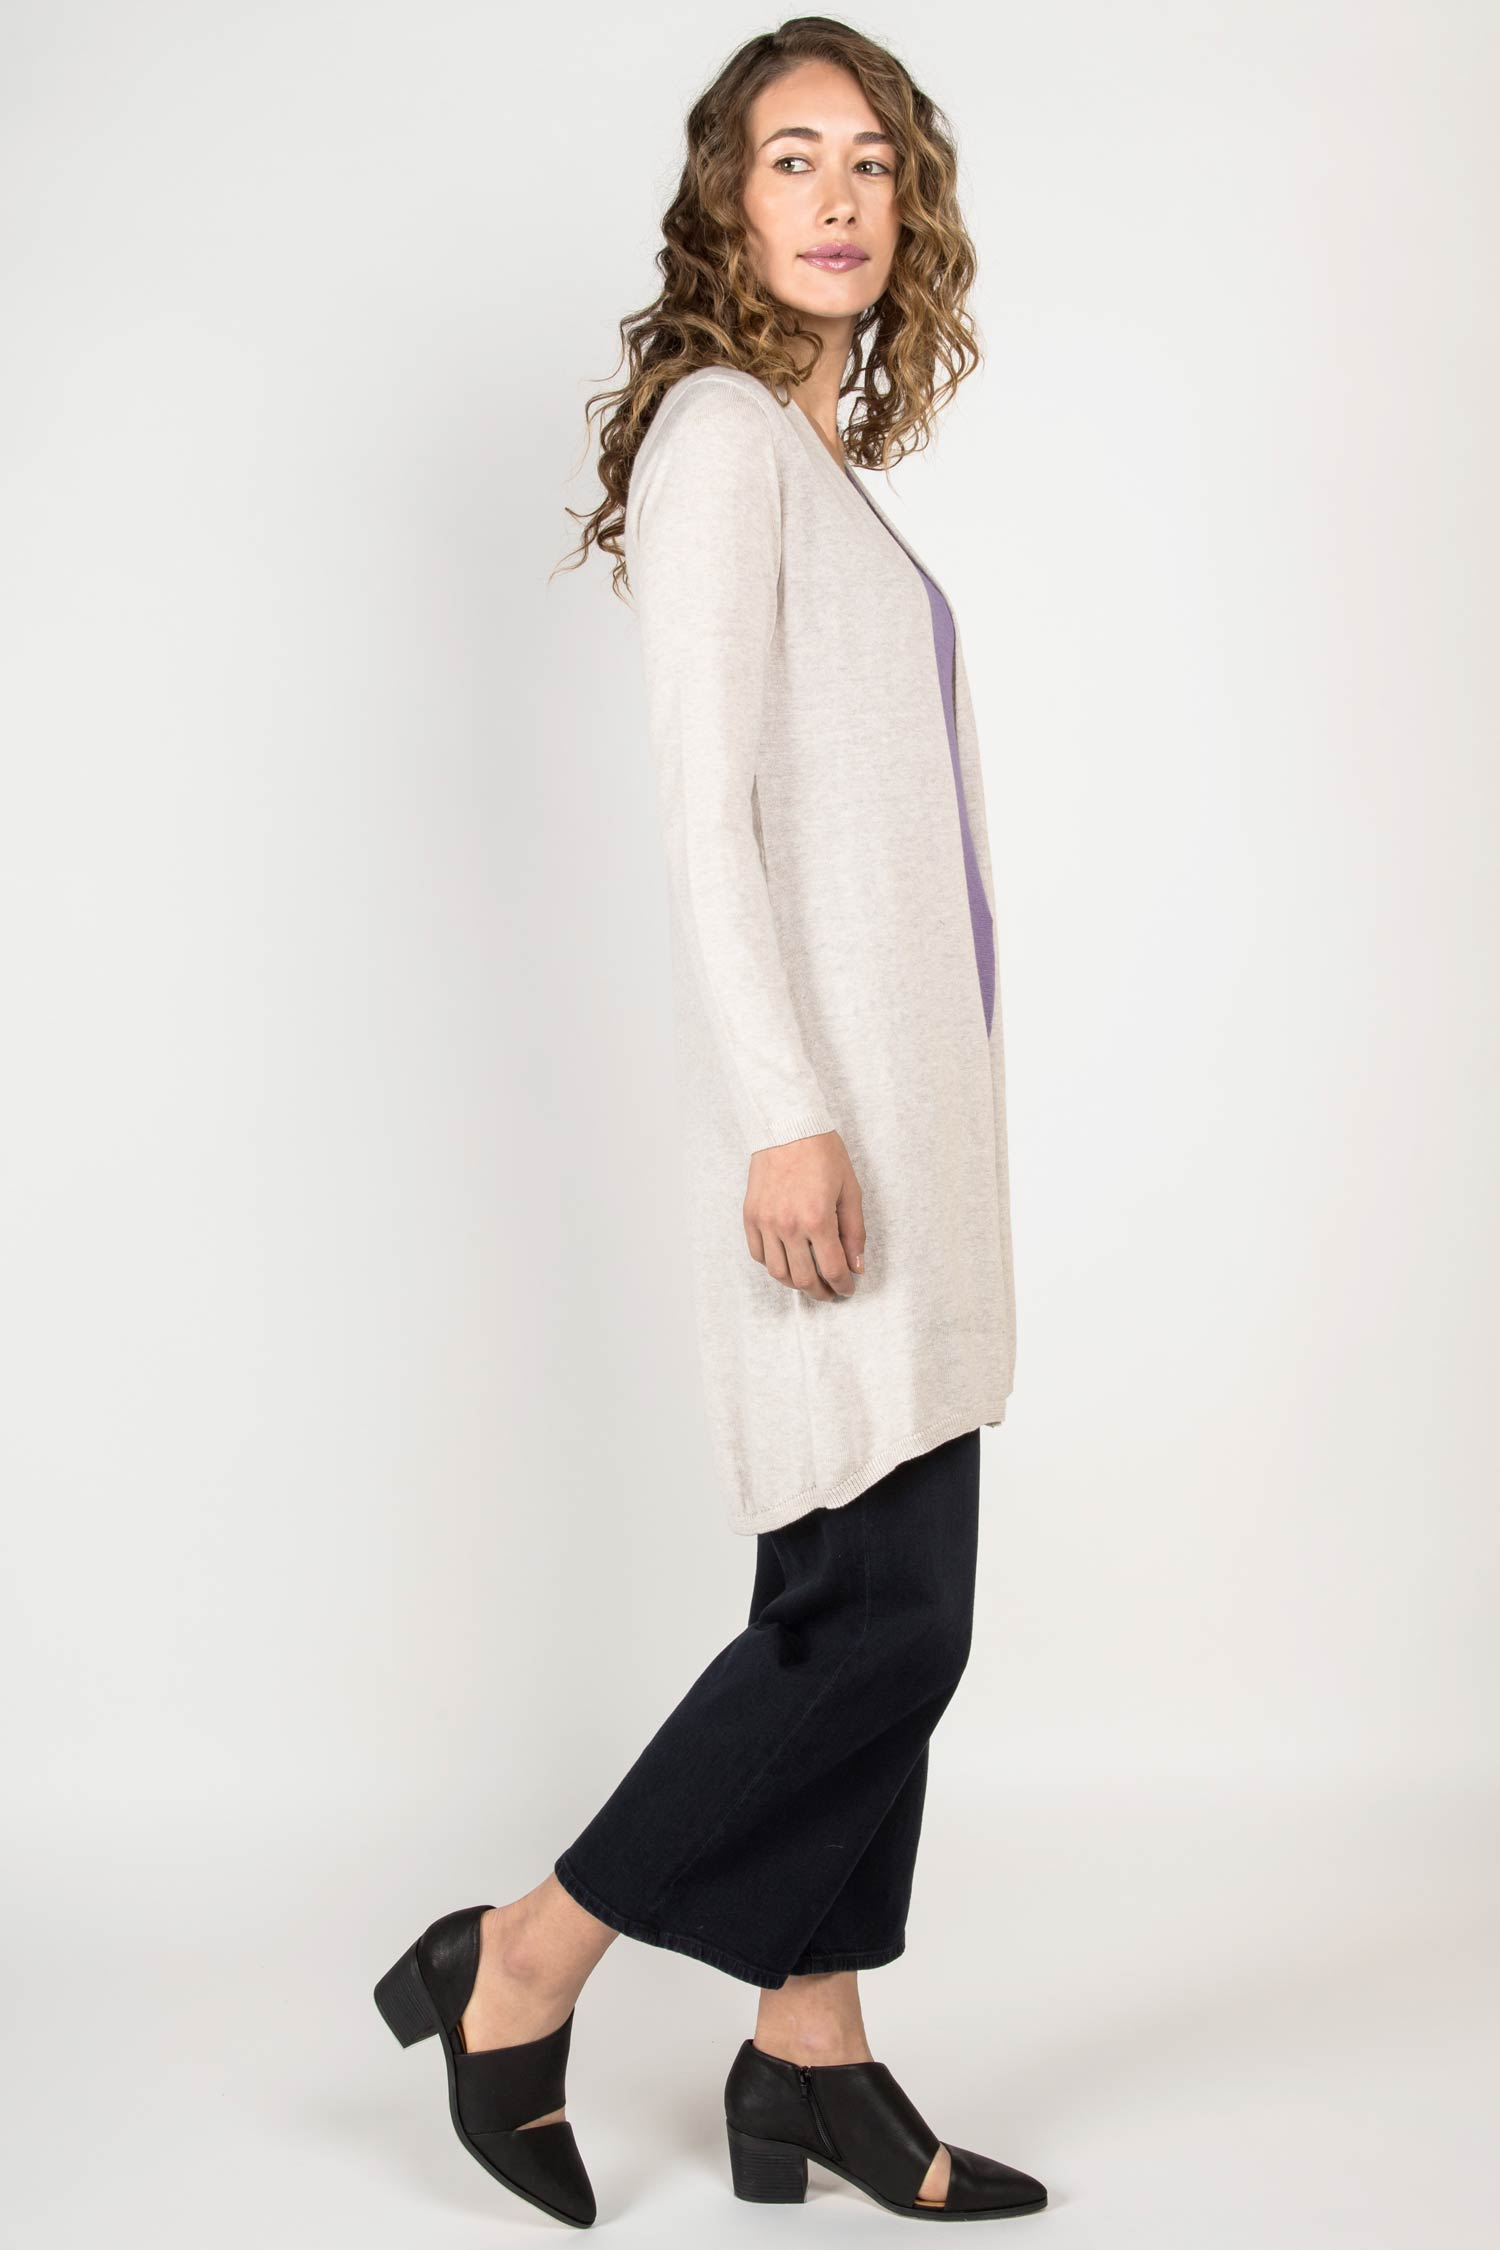 Essential Knit Cardigan - Indigenous